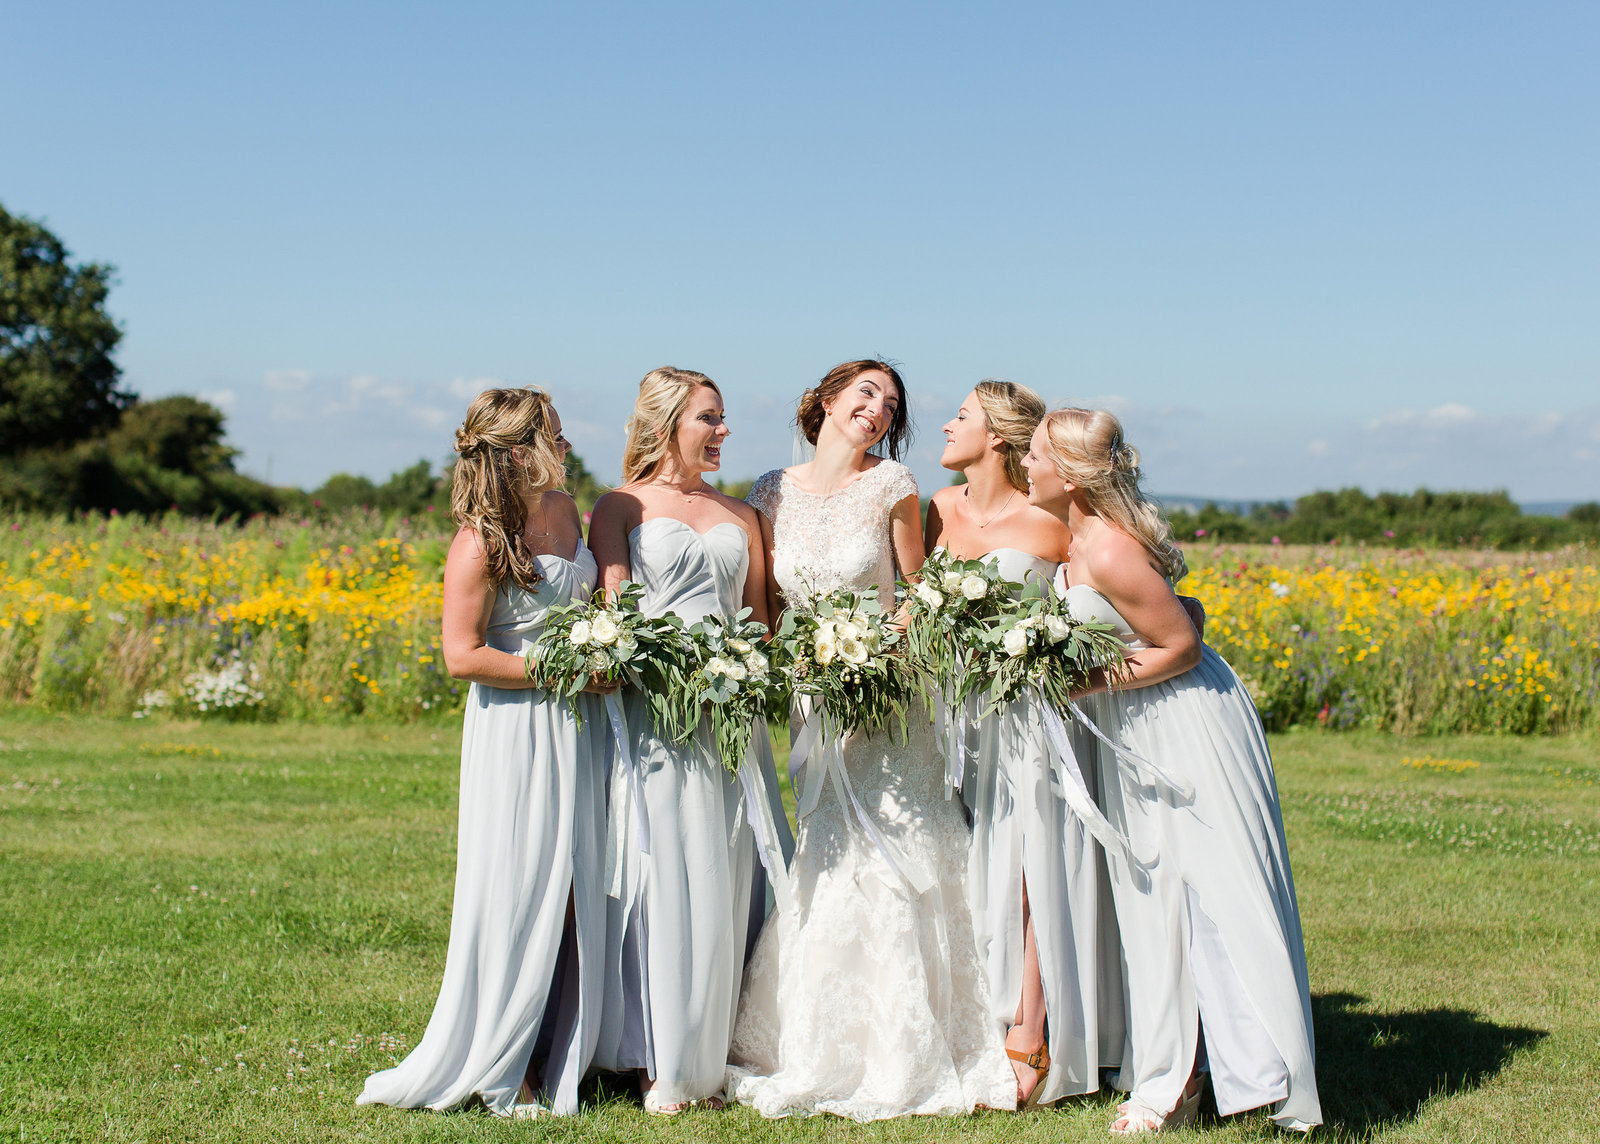 adorlee-173-wedding-photographer-chichester-west-sussex